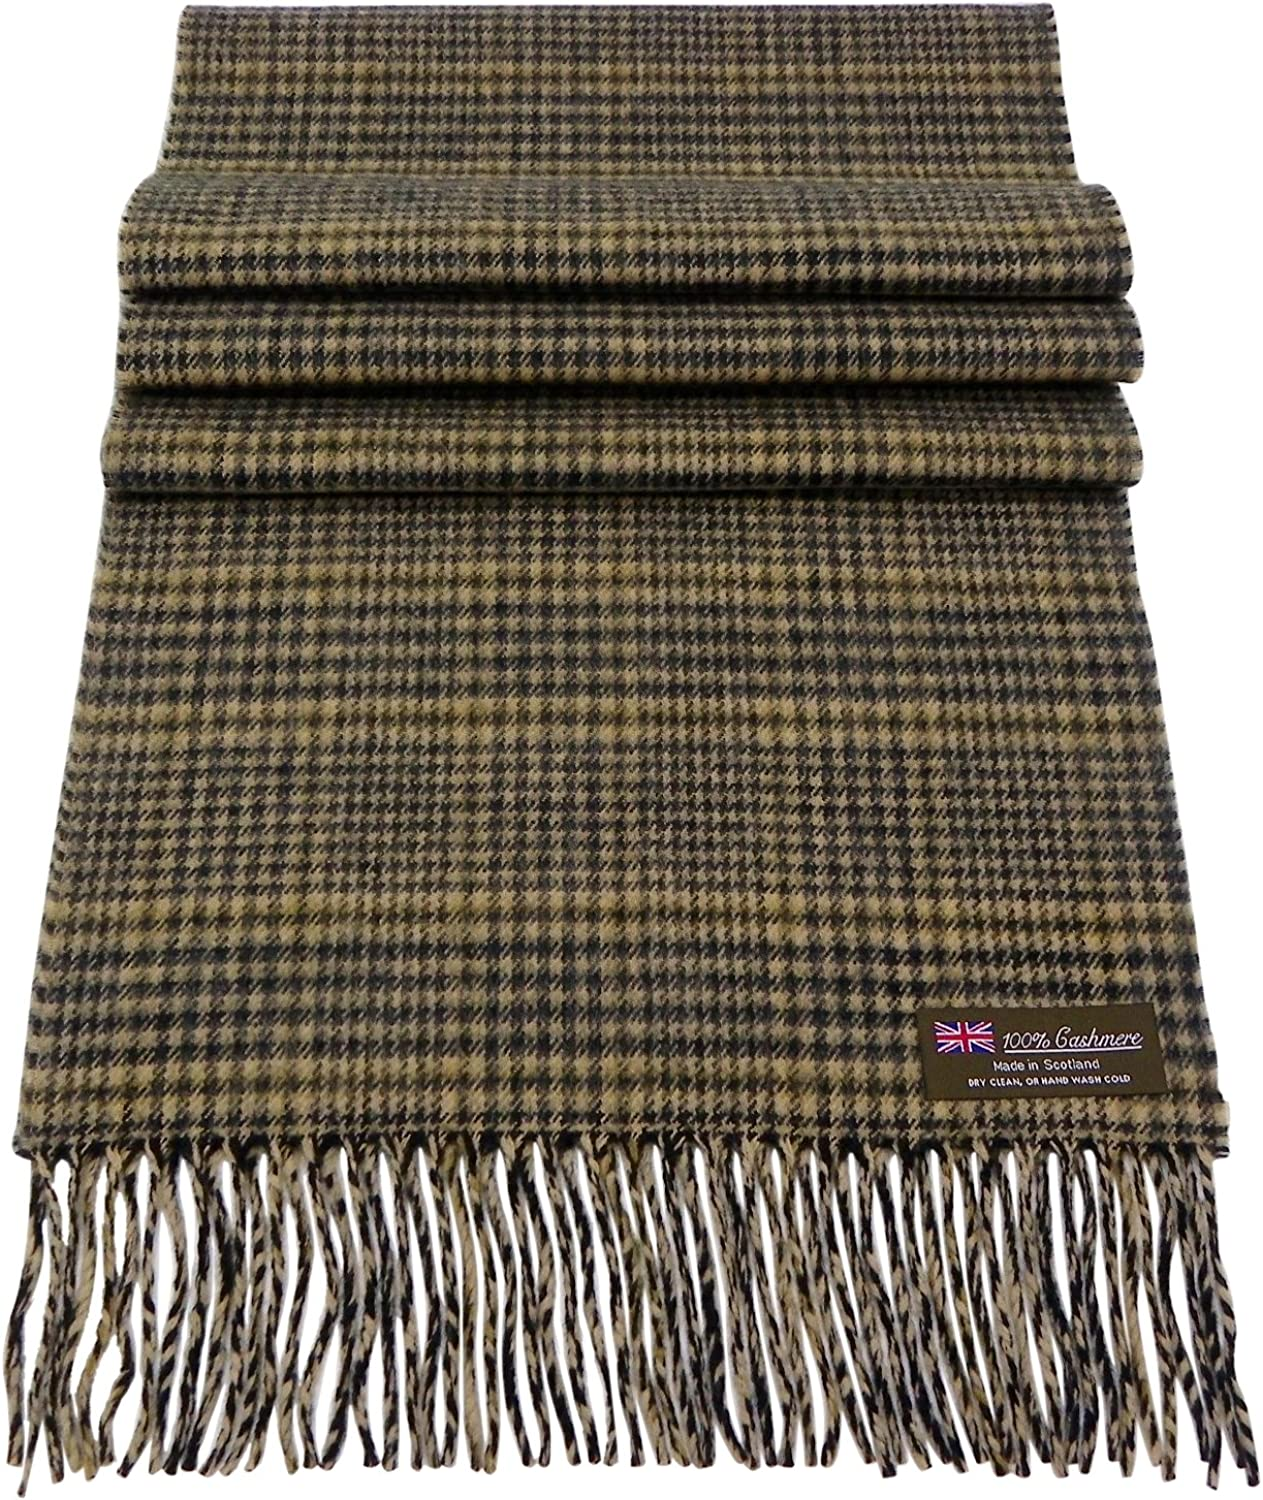 Rosemarie Collections 100/% Cashmere Winter Scarf Made in Scotland